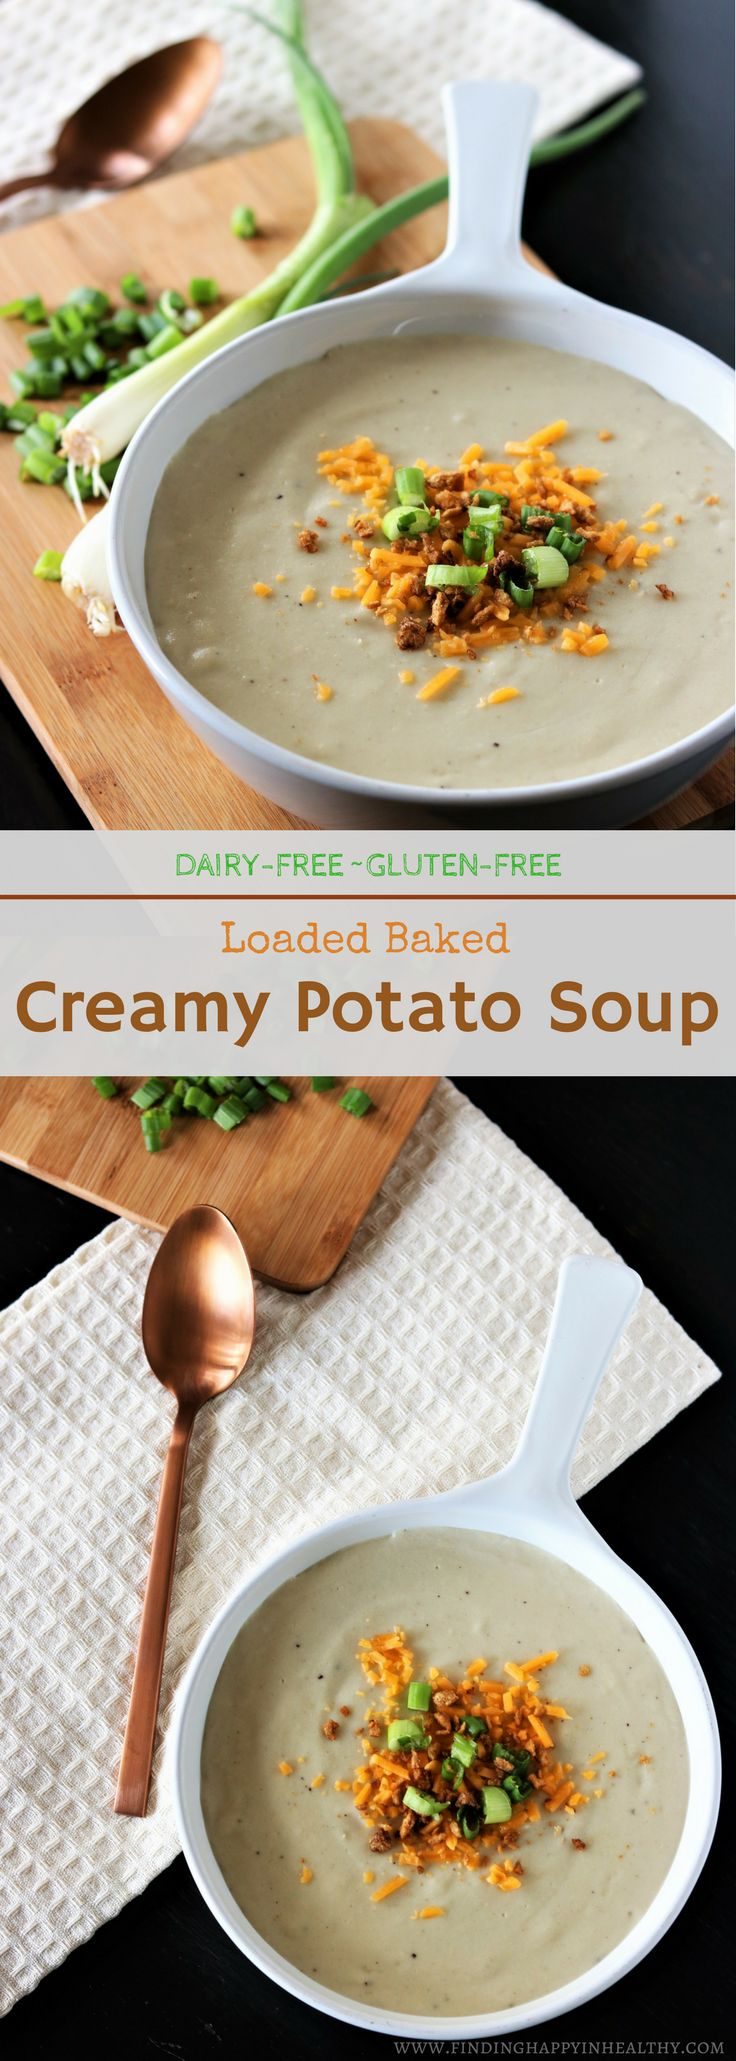 A delicious, dairy-free, gluten-free creamy loaded Baked Potato Soup.